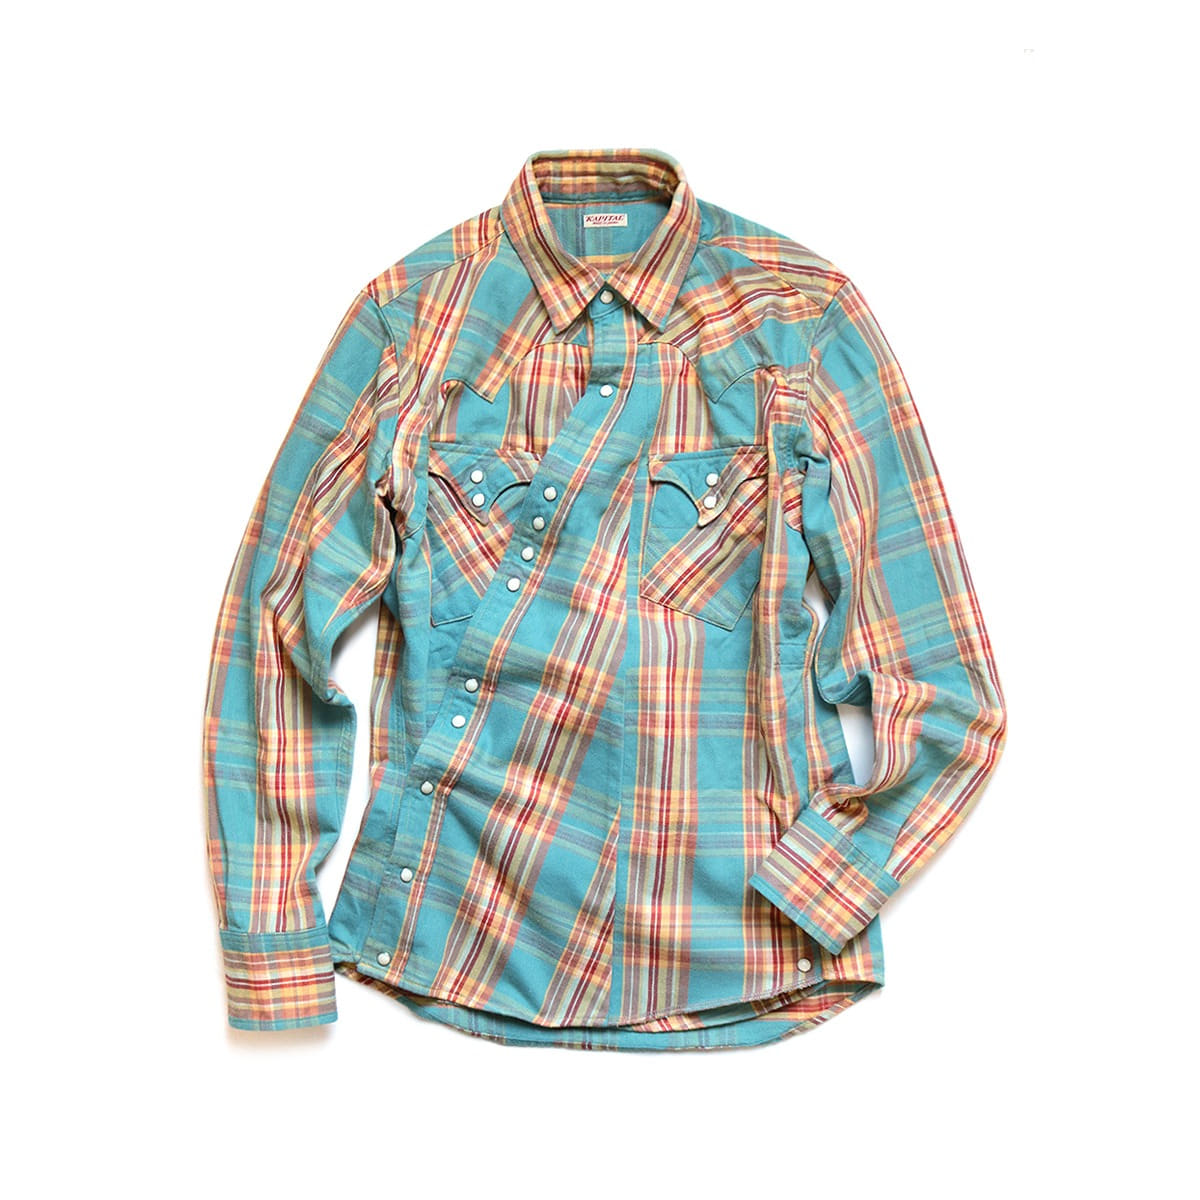 [KAPITAL] COTTON FLANNEL CHECK SUKIYAKI WESTERN SHIRT 'TURQUOISE'